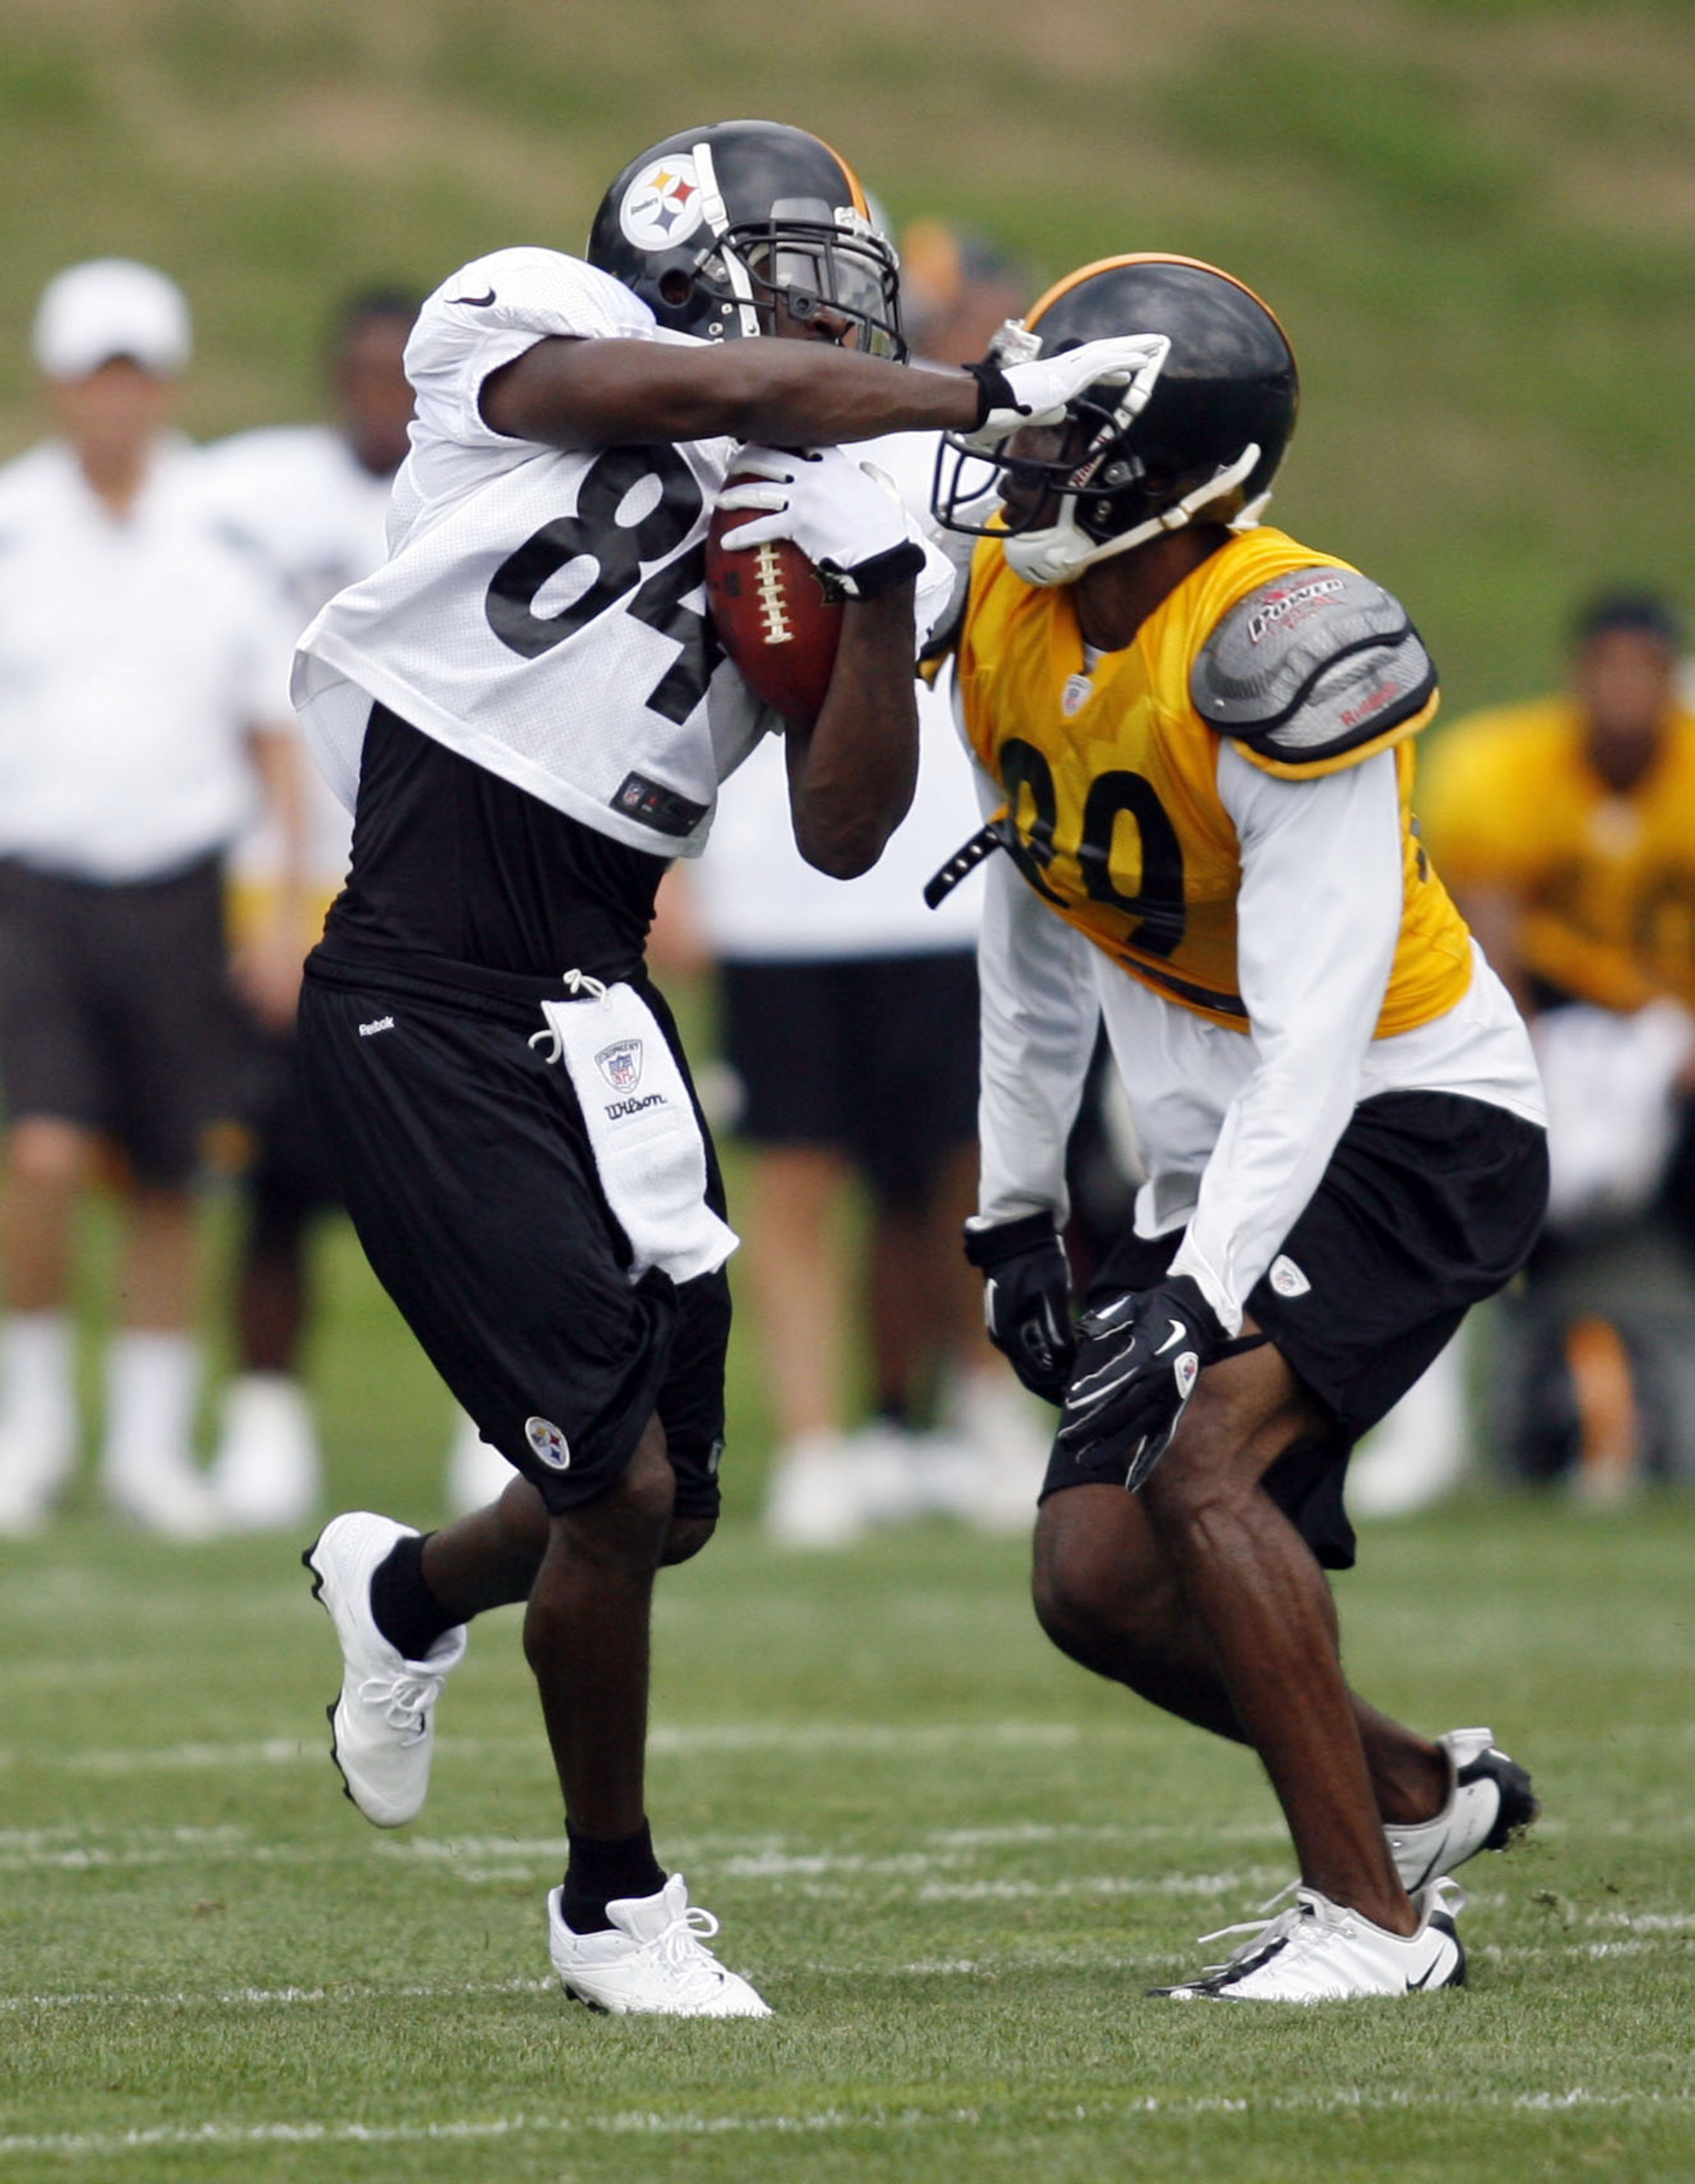 July 28, 2012; Pittsburgh, PA, USA; Pittsburgh Sttelers receiver Antonio Brown runs after a catch against cornerback Walter McFadden (right) during training camp at Saint Vincent College. Mandatory Credit: Charles LeClaire-US PRESSWIRE